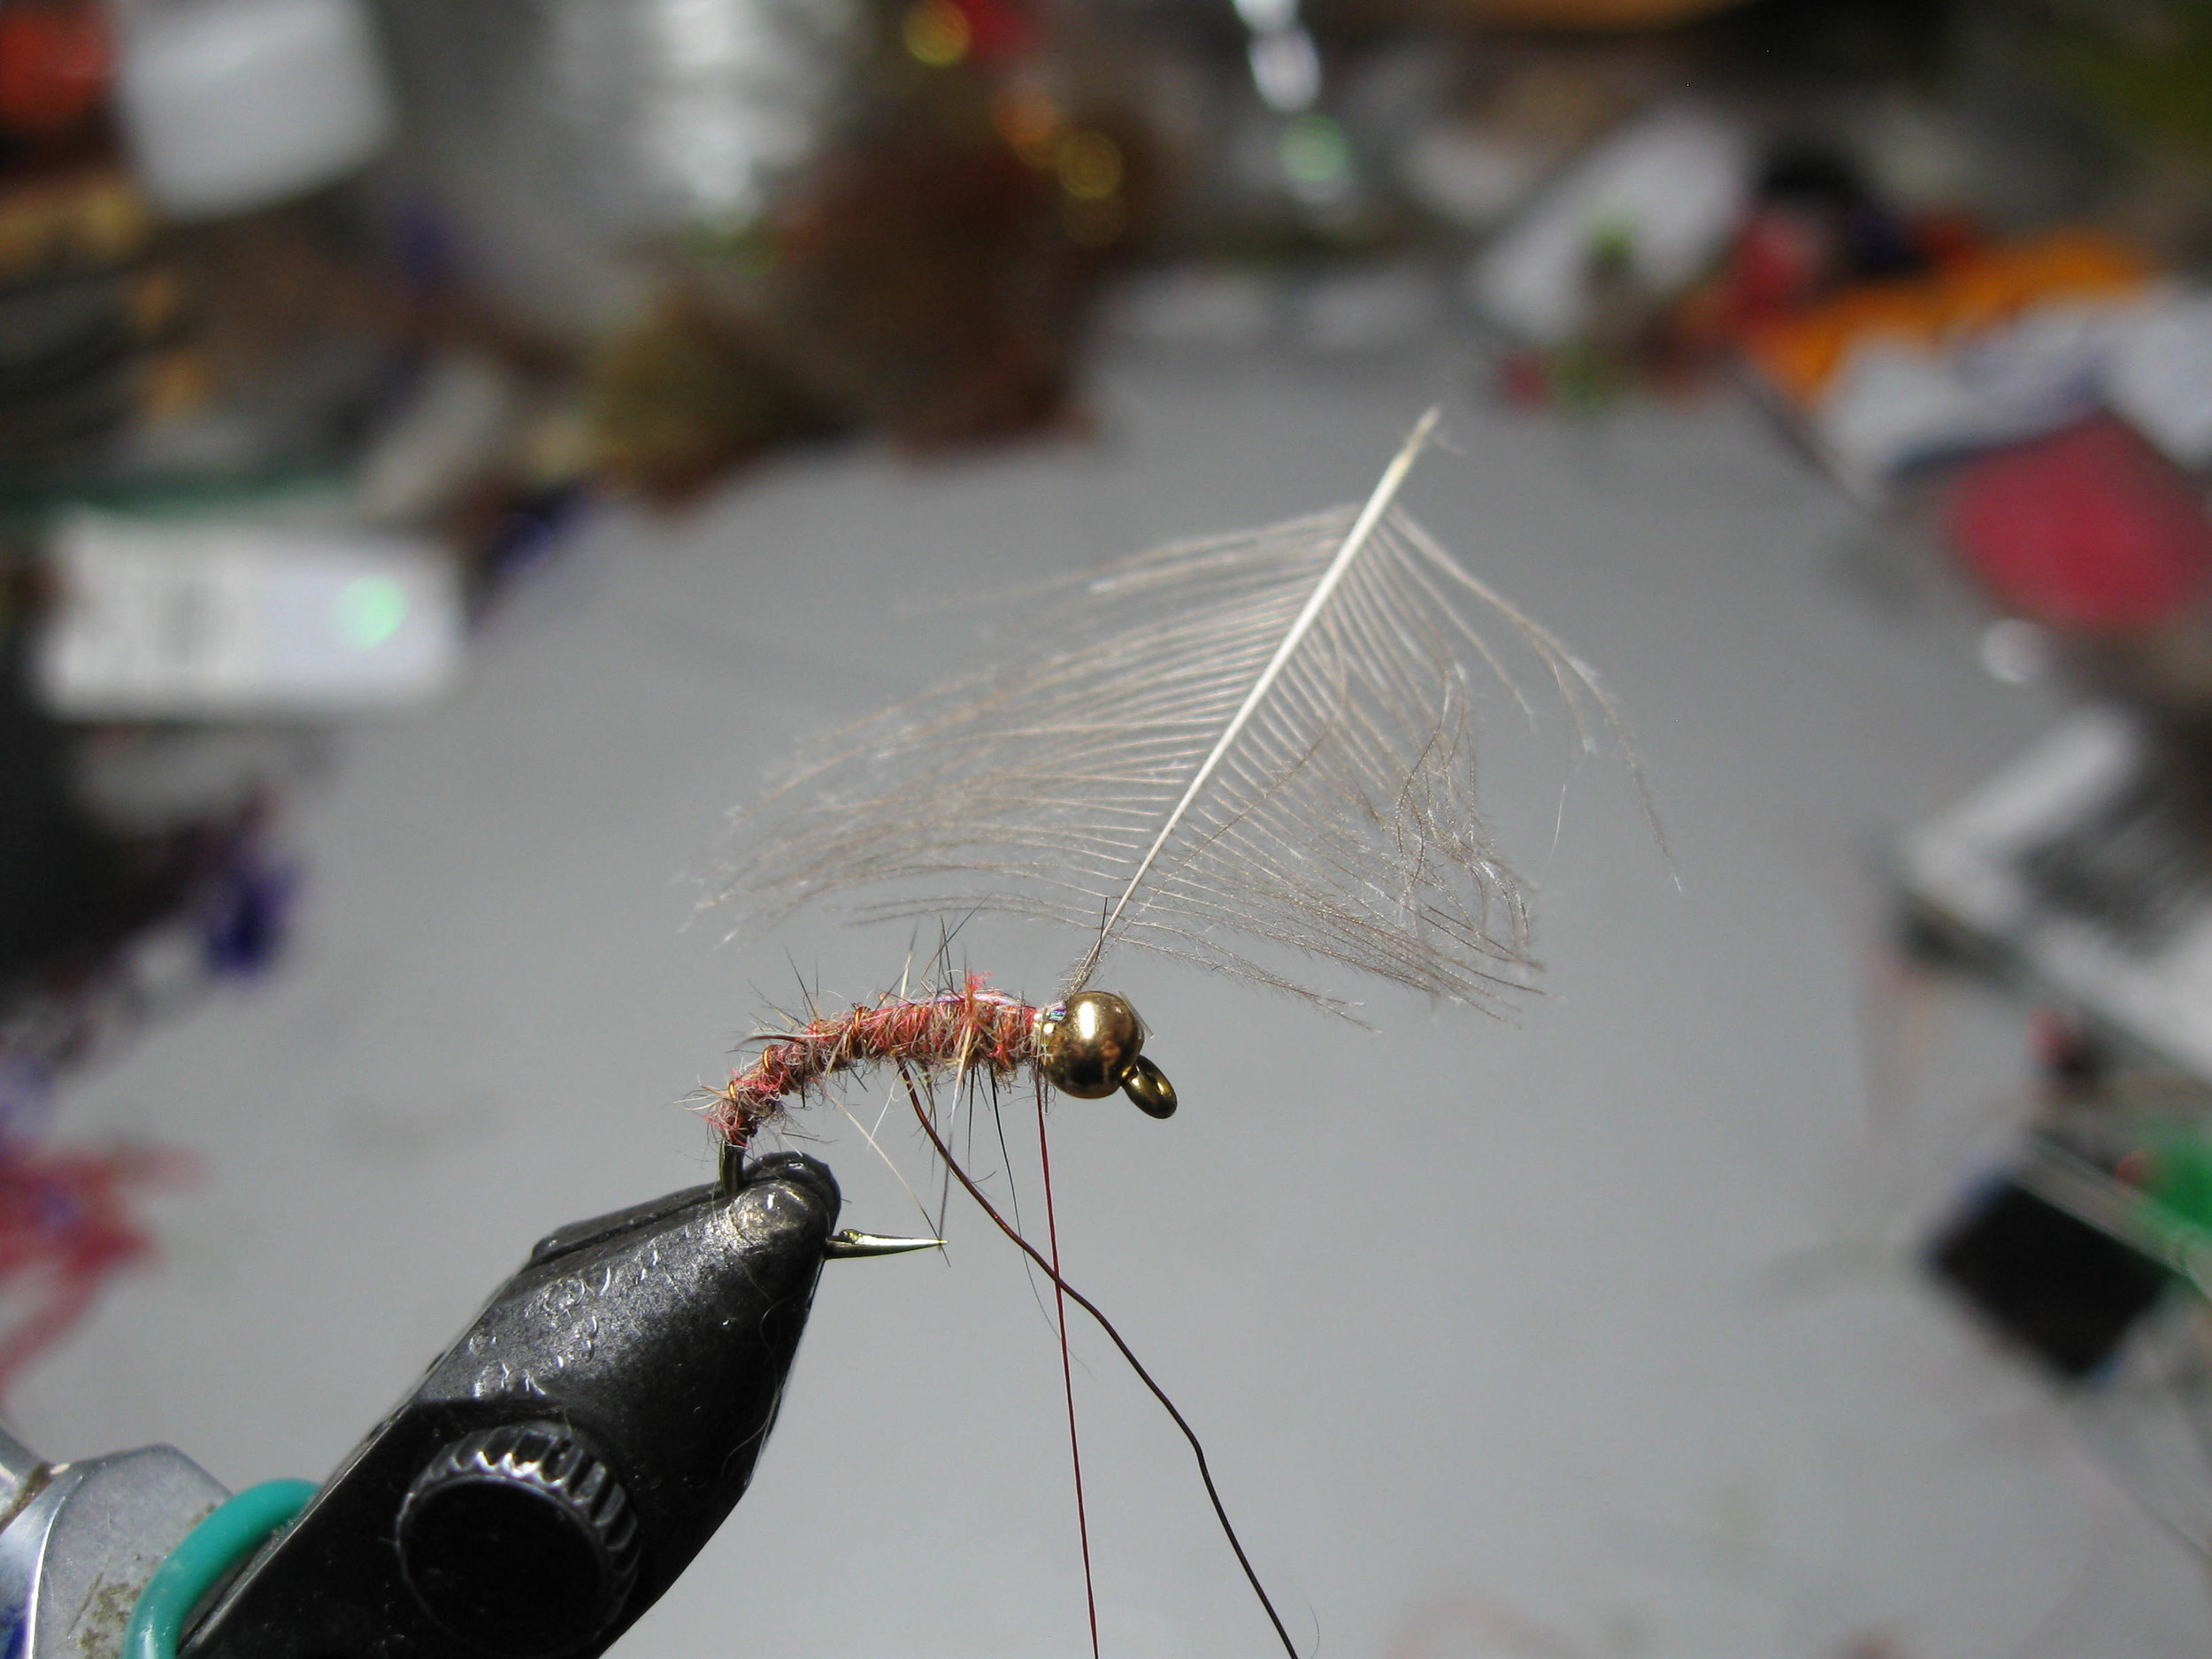 5. This job will be made a great deal easier when you start winding the wire rib. Keep the turns even and fairly open. Aim to place five or six turns along the shank. Make sure your winding pressure does not take the Mylar to the far side of the hook.